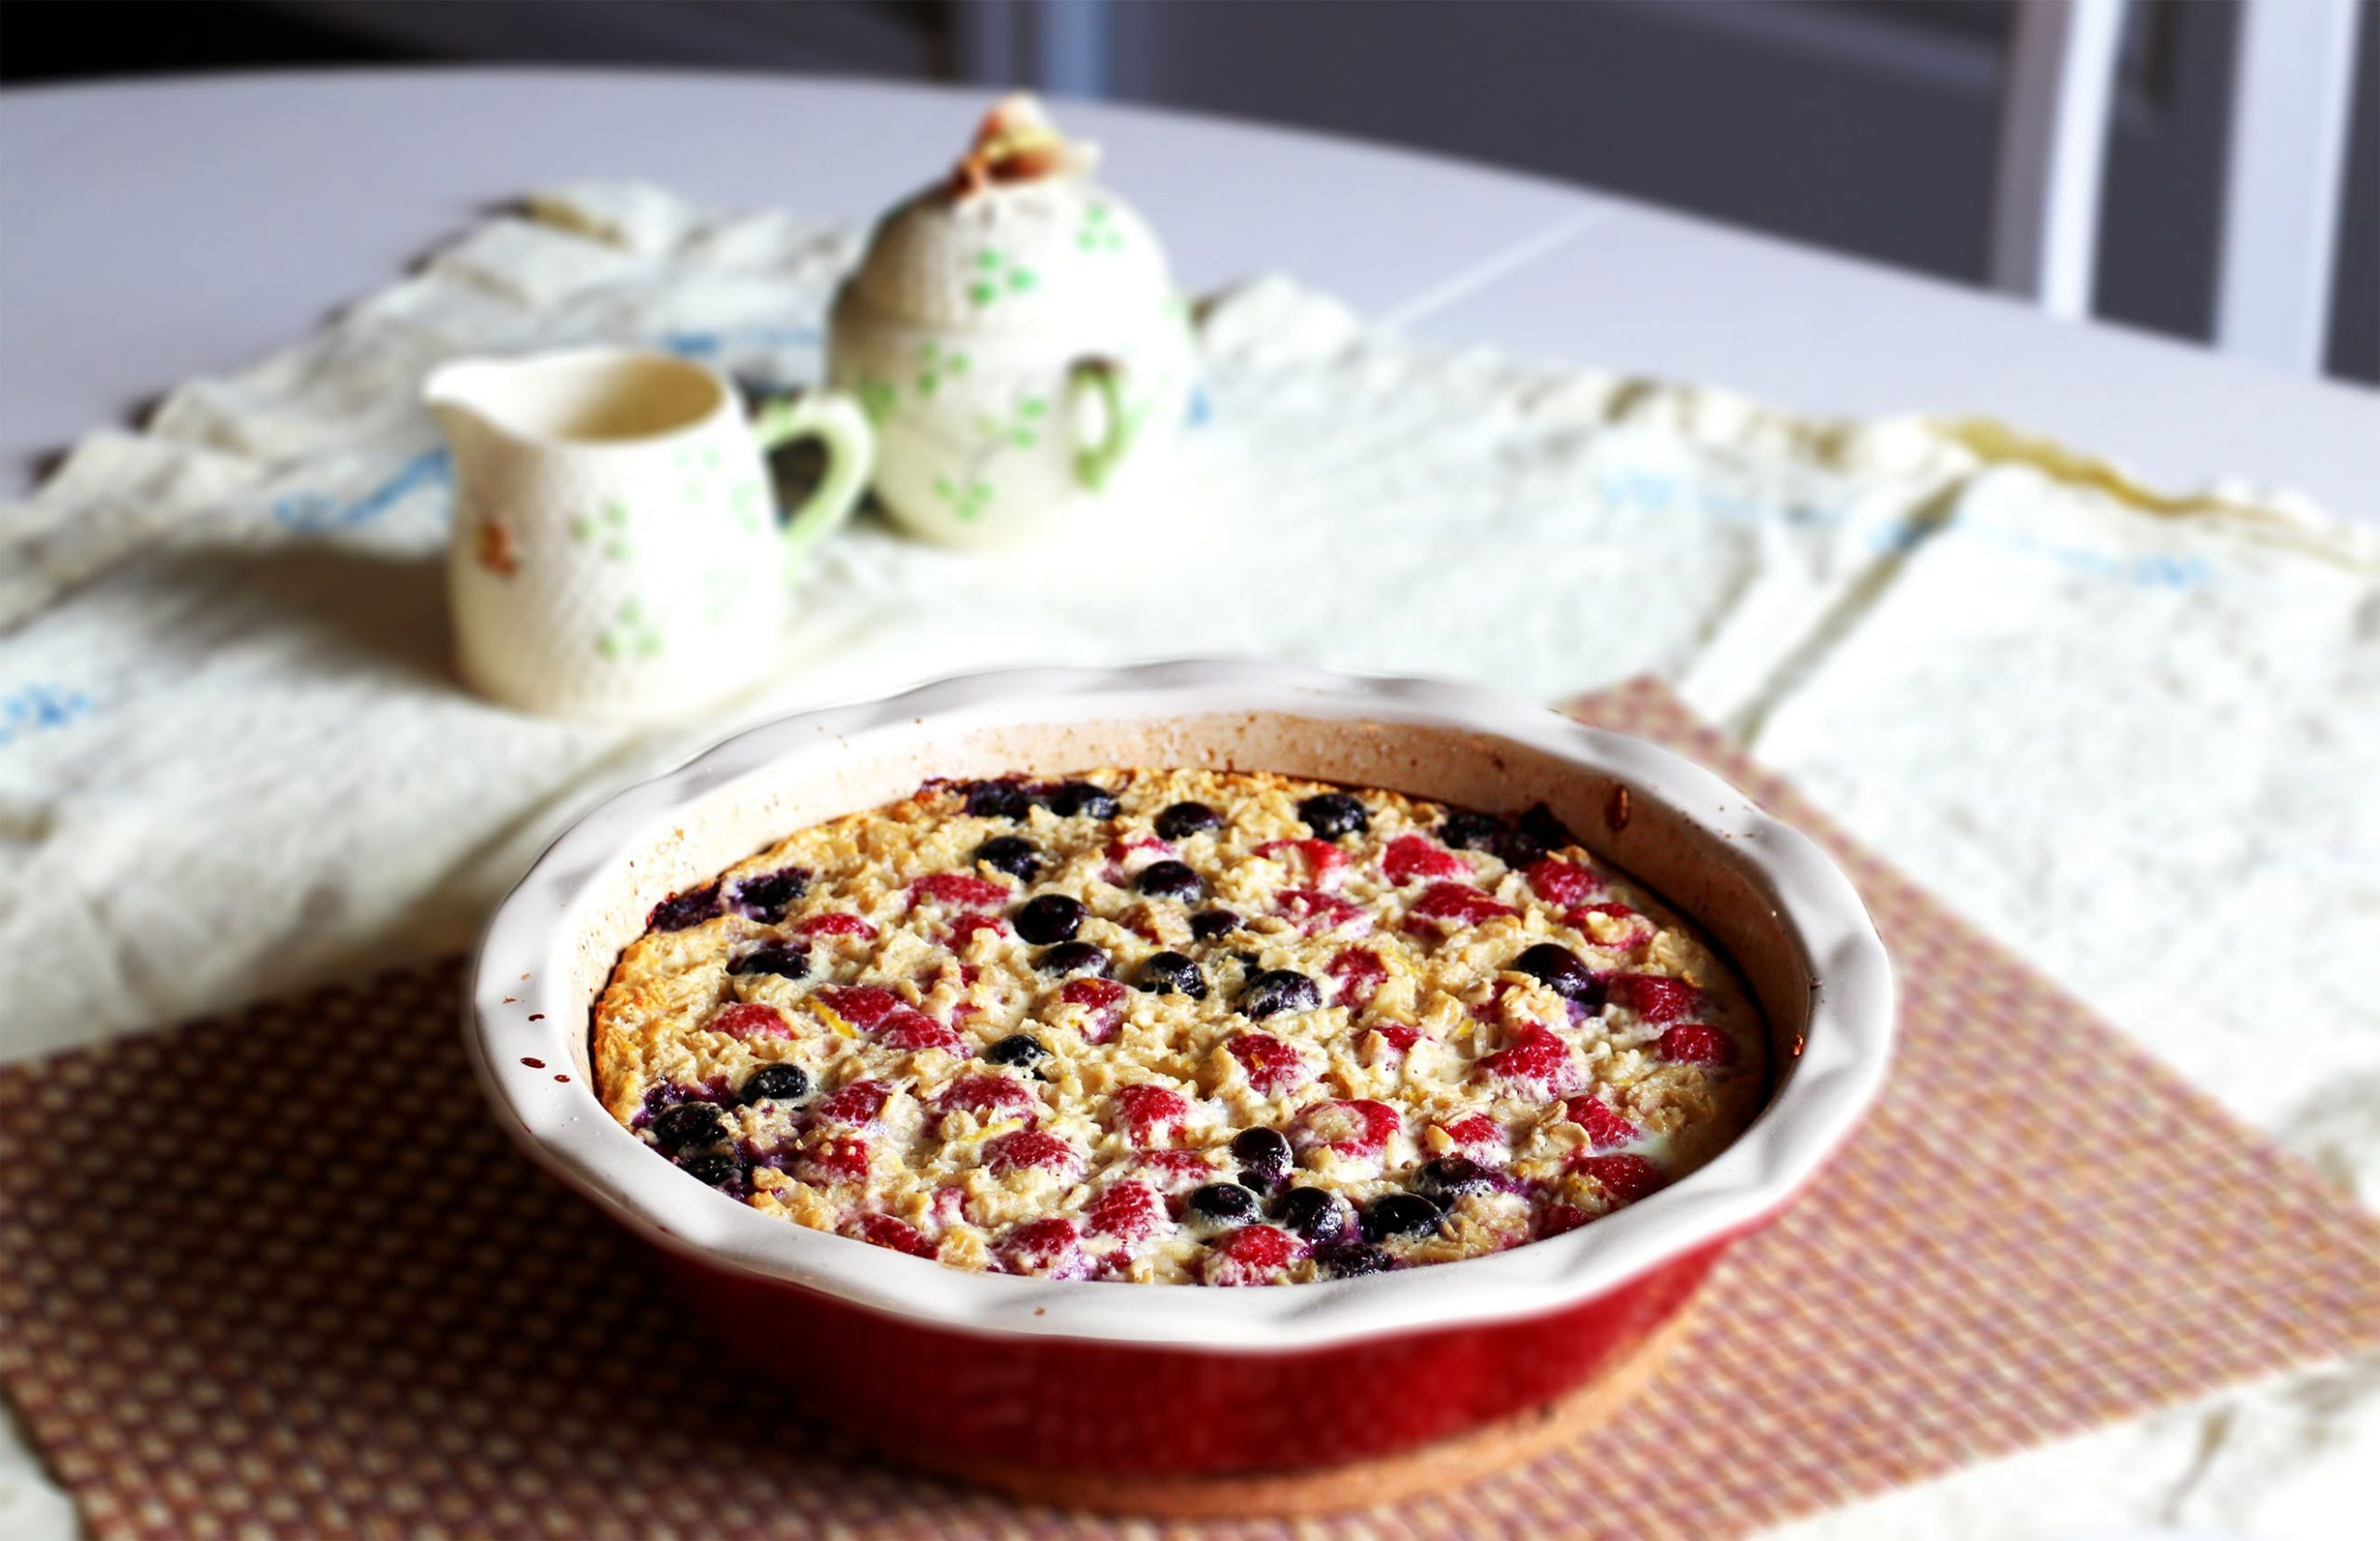 baked oatmeal lemon berry